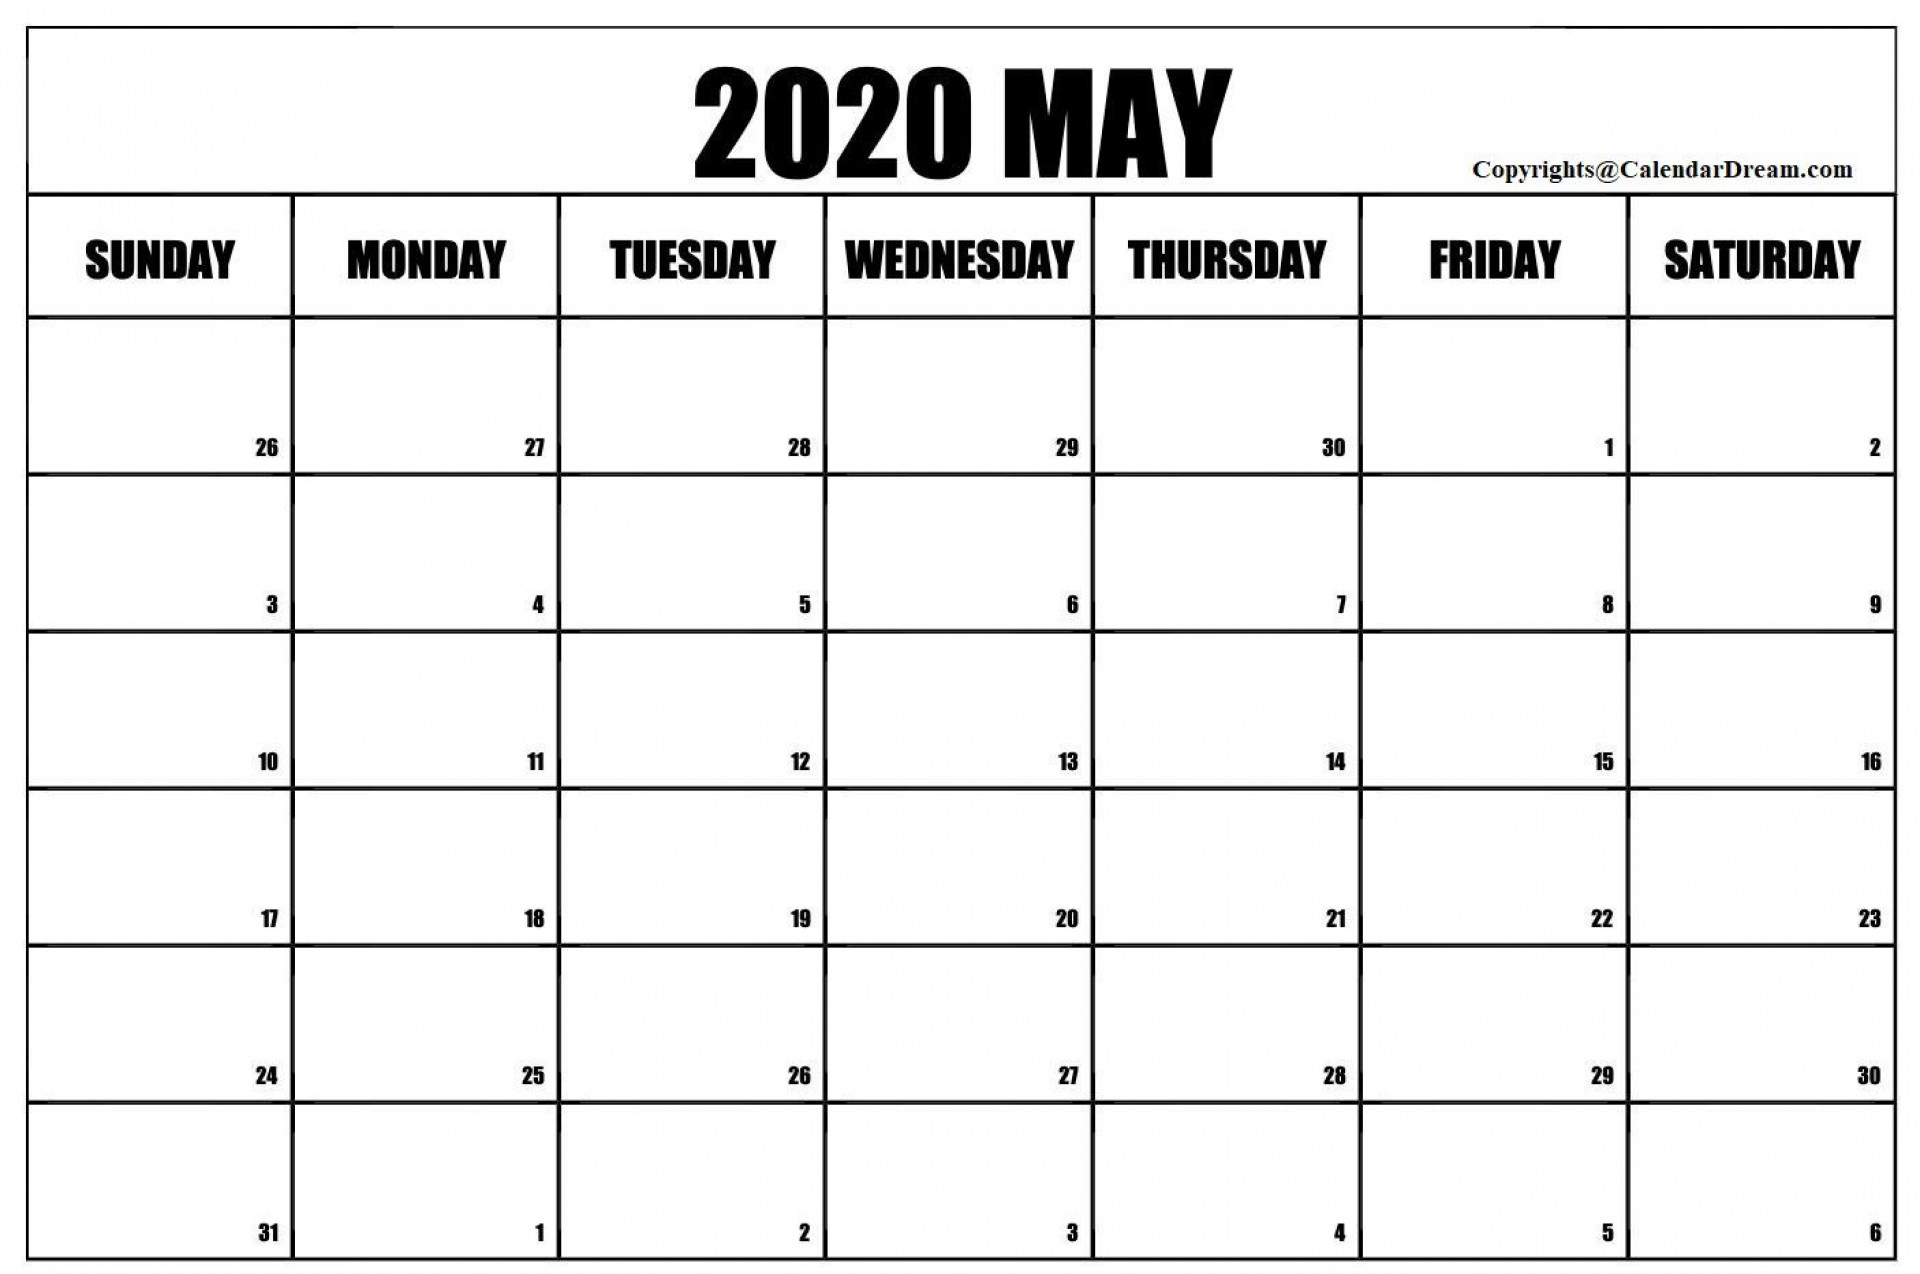 008 Stirring Free 2020 Calendar Template High Definition  Templates Monthly Excel Download Printable May1920